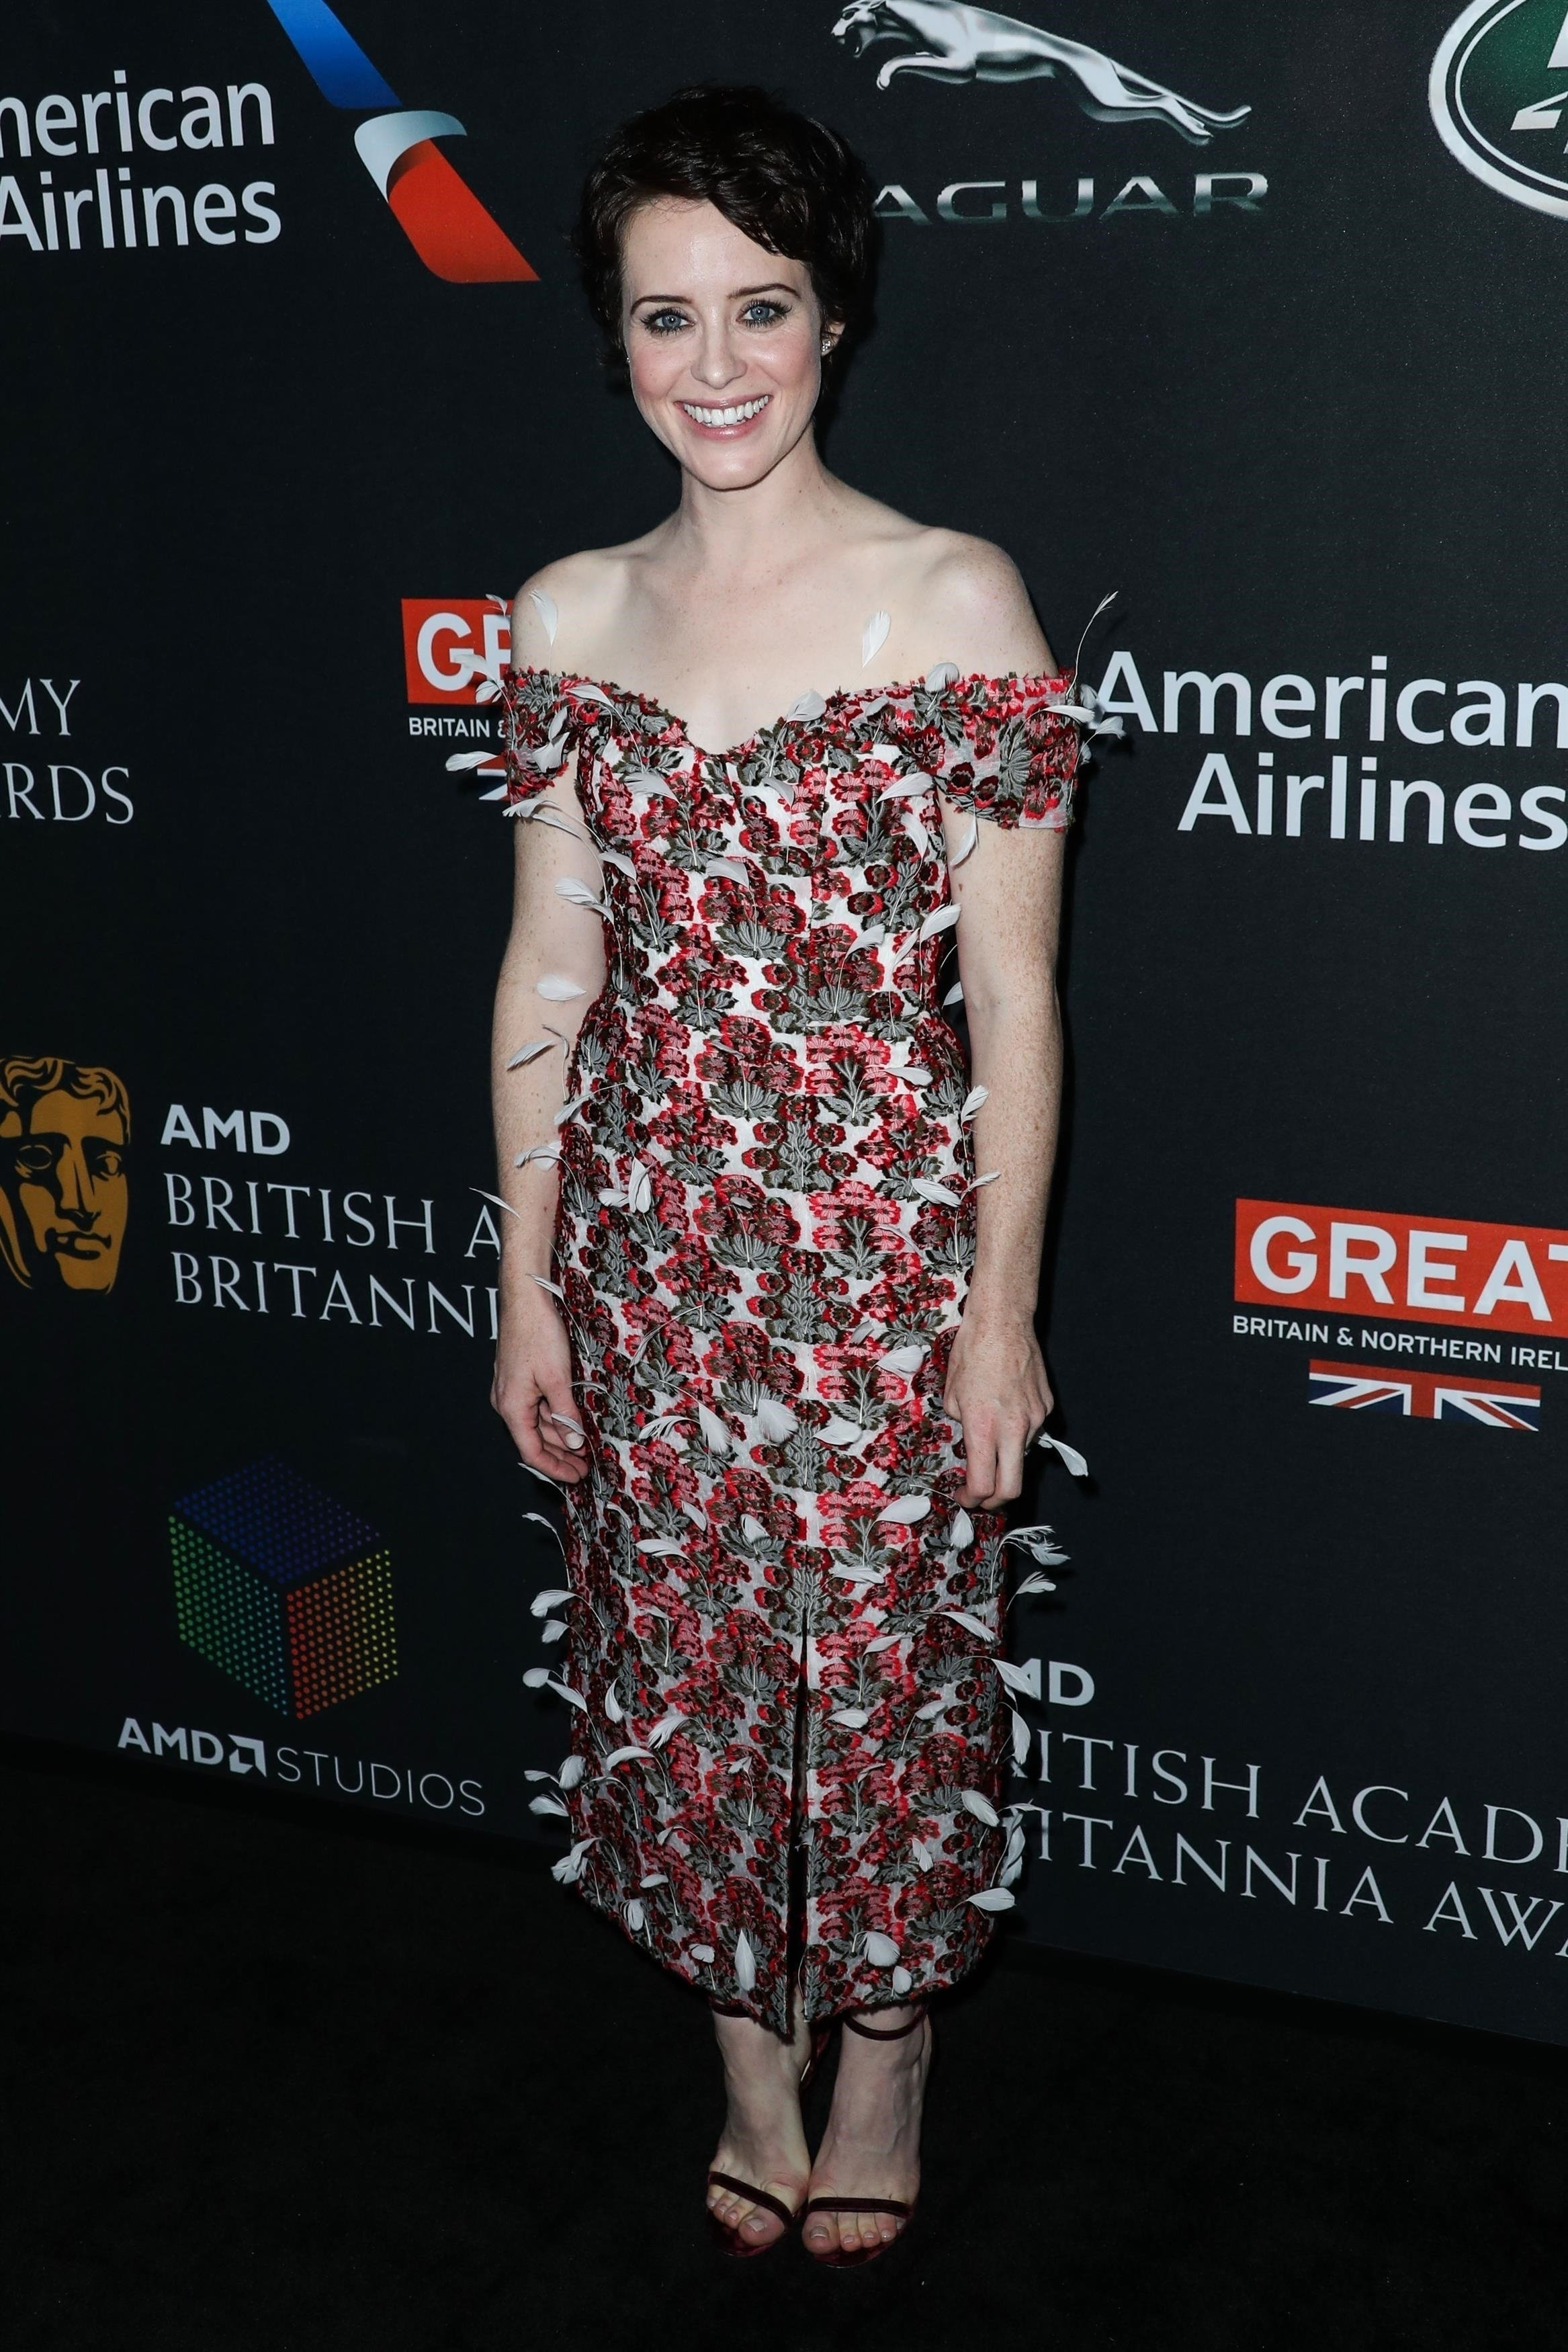 Beverly Hills, CA  - 2017 AMD British Academy Britannia Awards Presented by American Airlines And Jaguar Land Rover held at the Beverly Hilton Hotel on October 27, 2017 in Beverly Hills, California.  Pictured: Claire Foy  BACKGRID USA 27 OCTOBER 2017, Image: 354073204, License: Rights-managed, Restrictions: , Model Release: no, Credit line: Profimedia, AKM-GSI